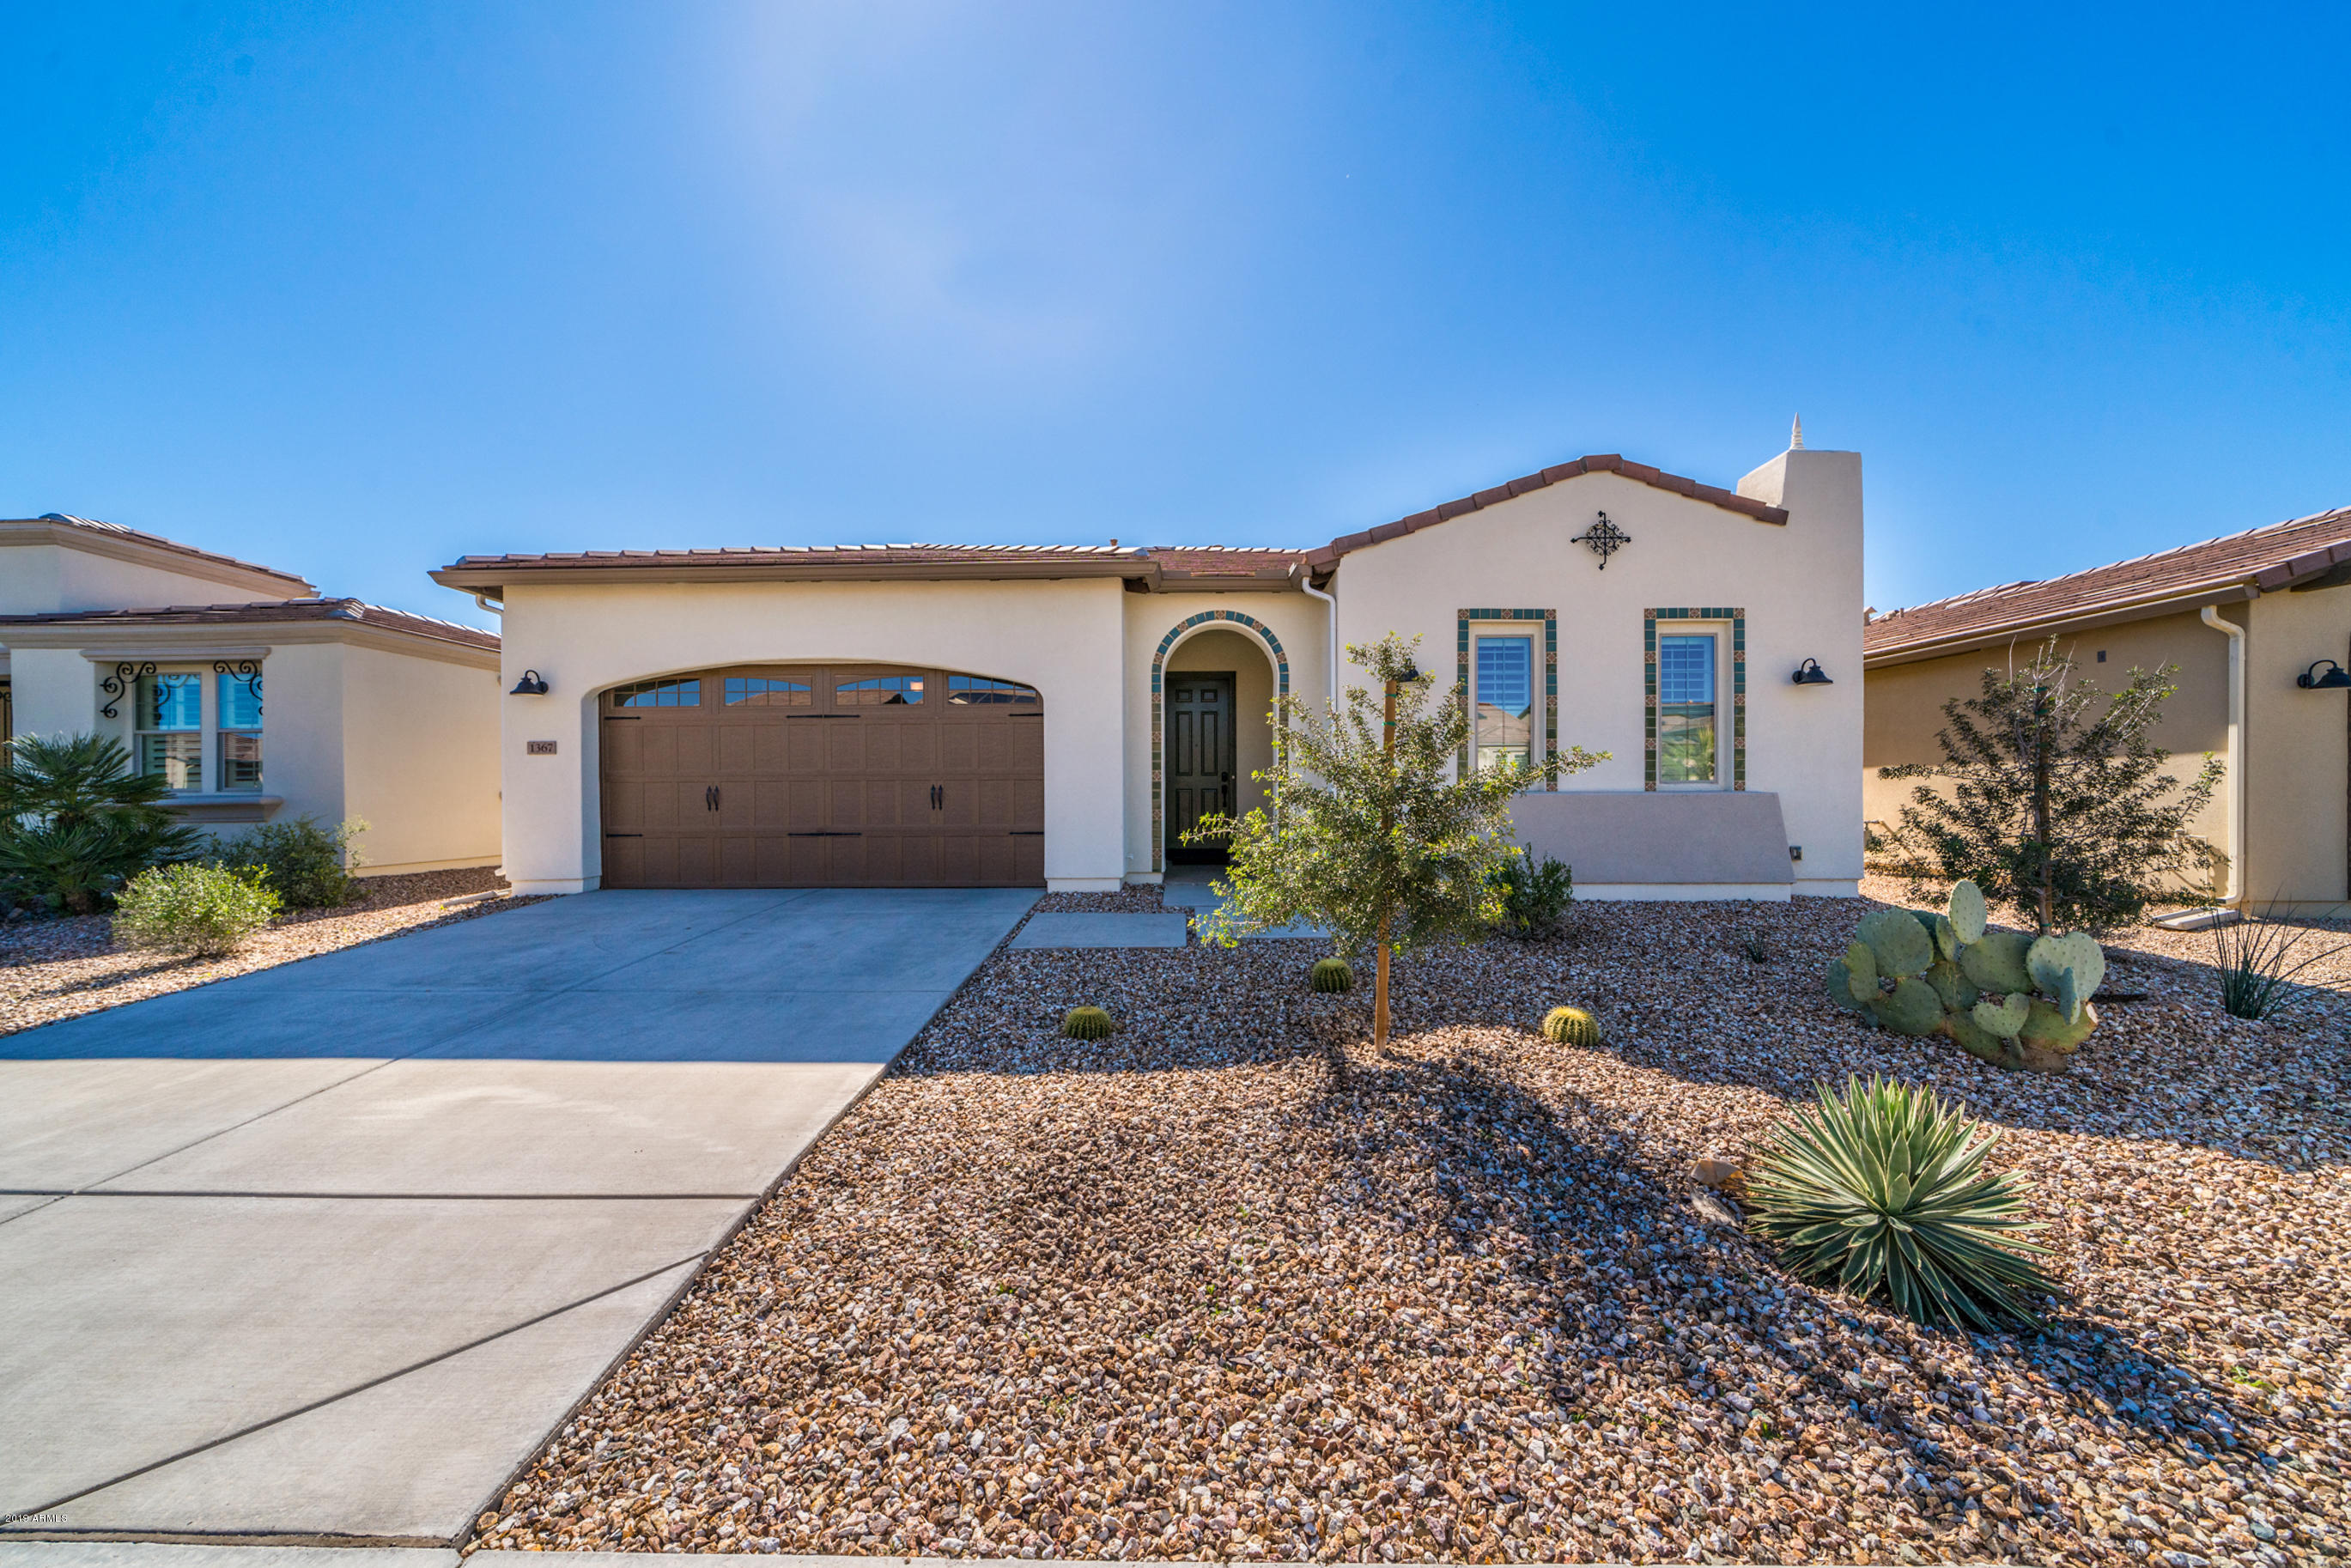 Photo of 1367 E VERDE Boulevard, San Tan Valley, AZ 85140